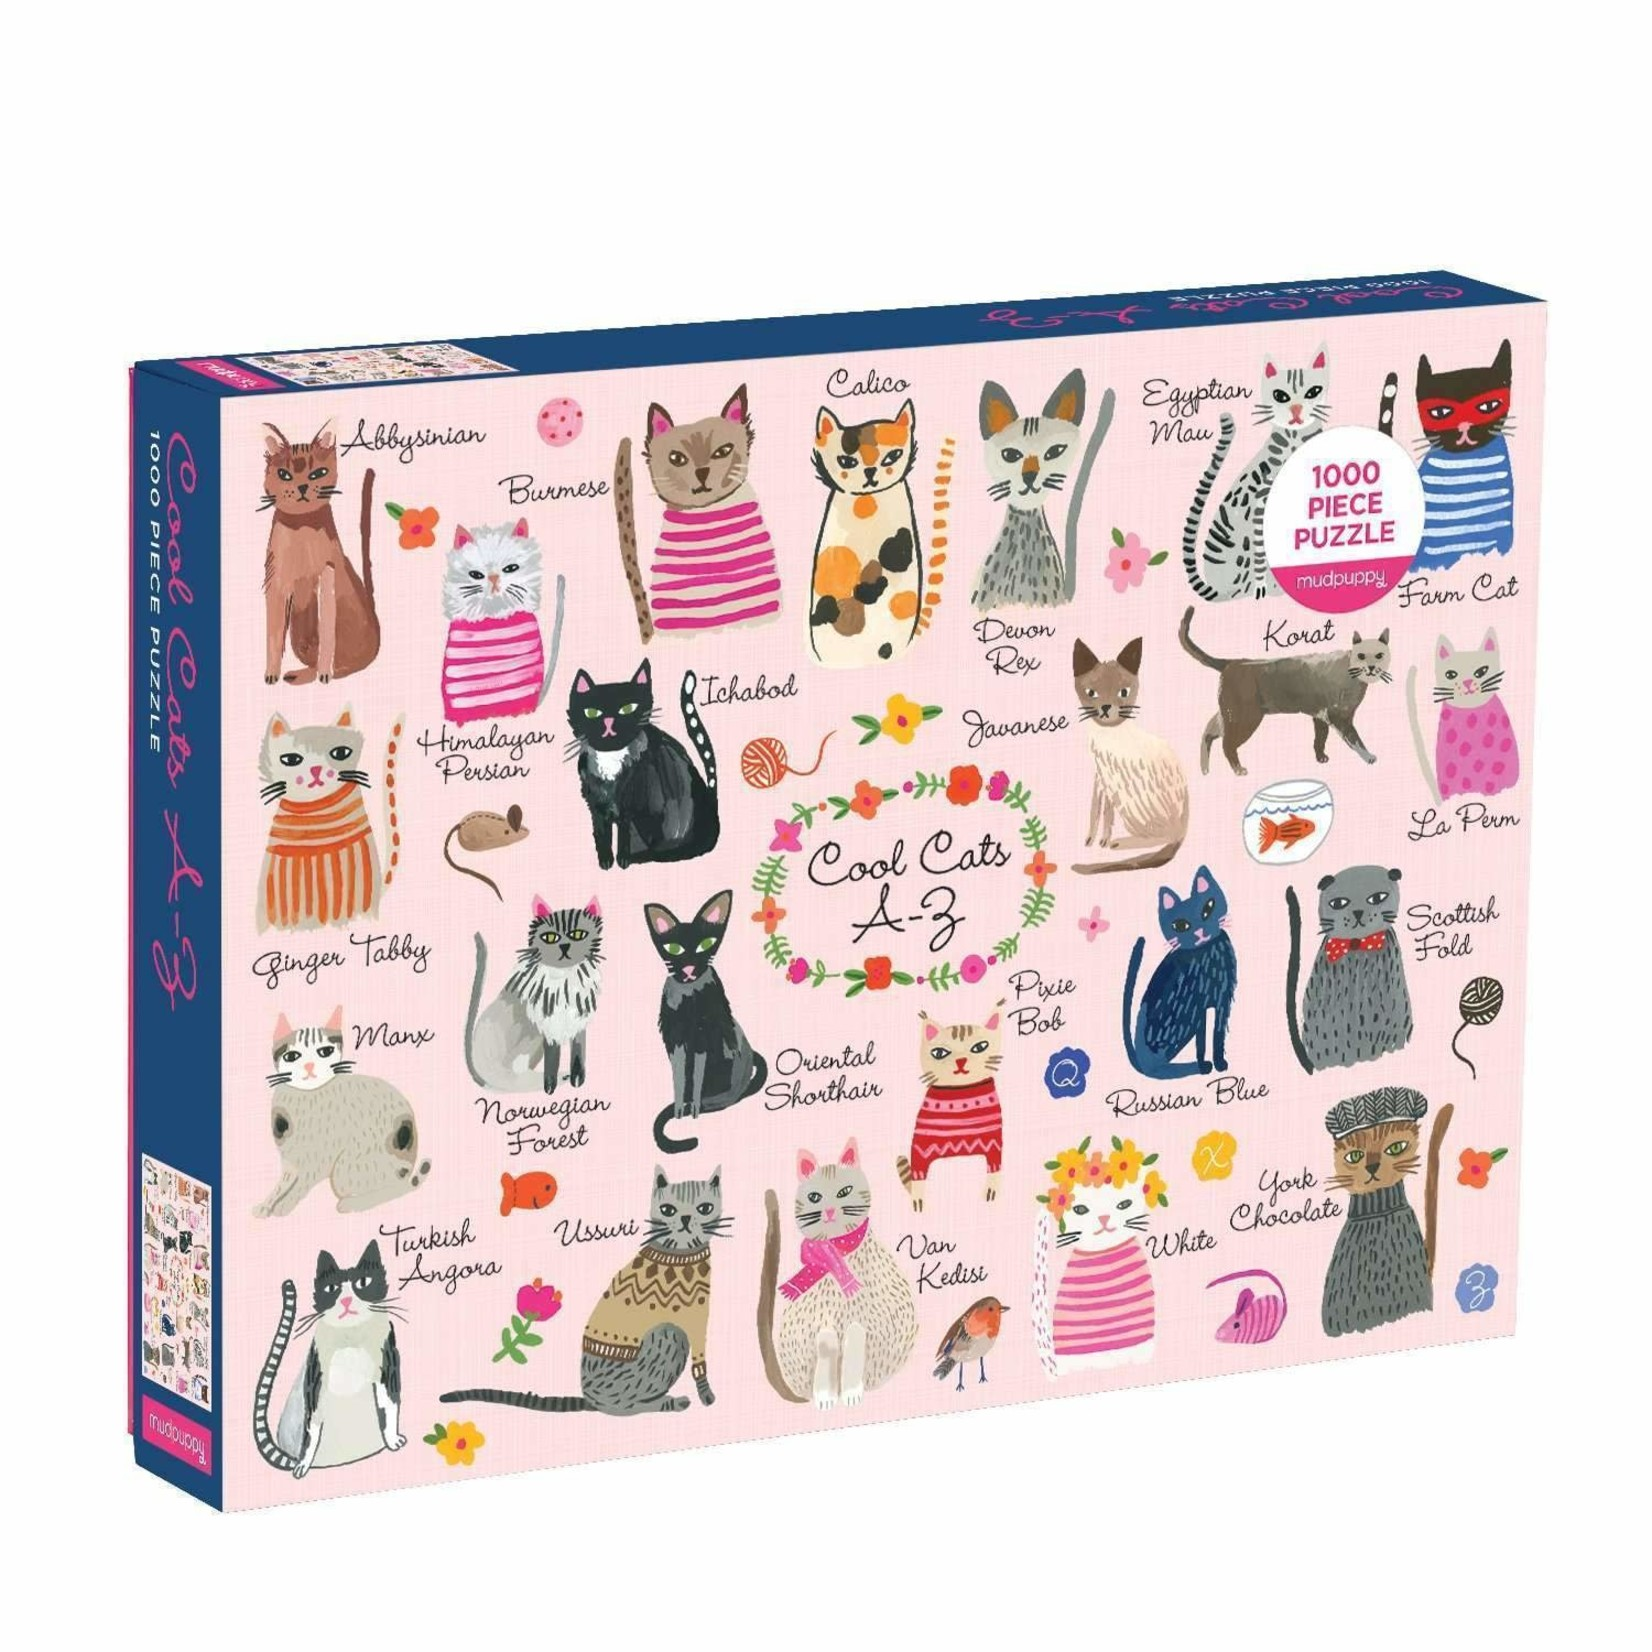 Galison Cool Cats A-Z - 1000 Piece Jigsaw Puzzle